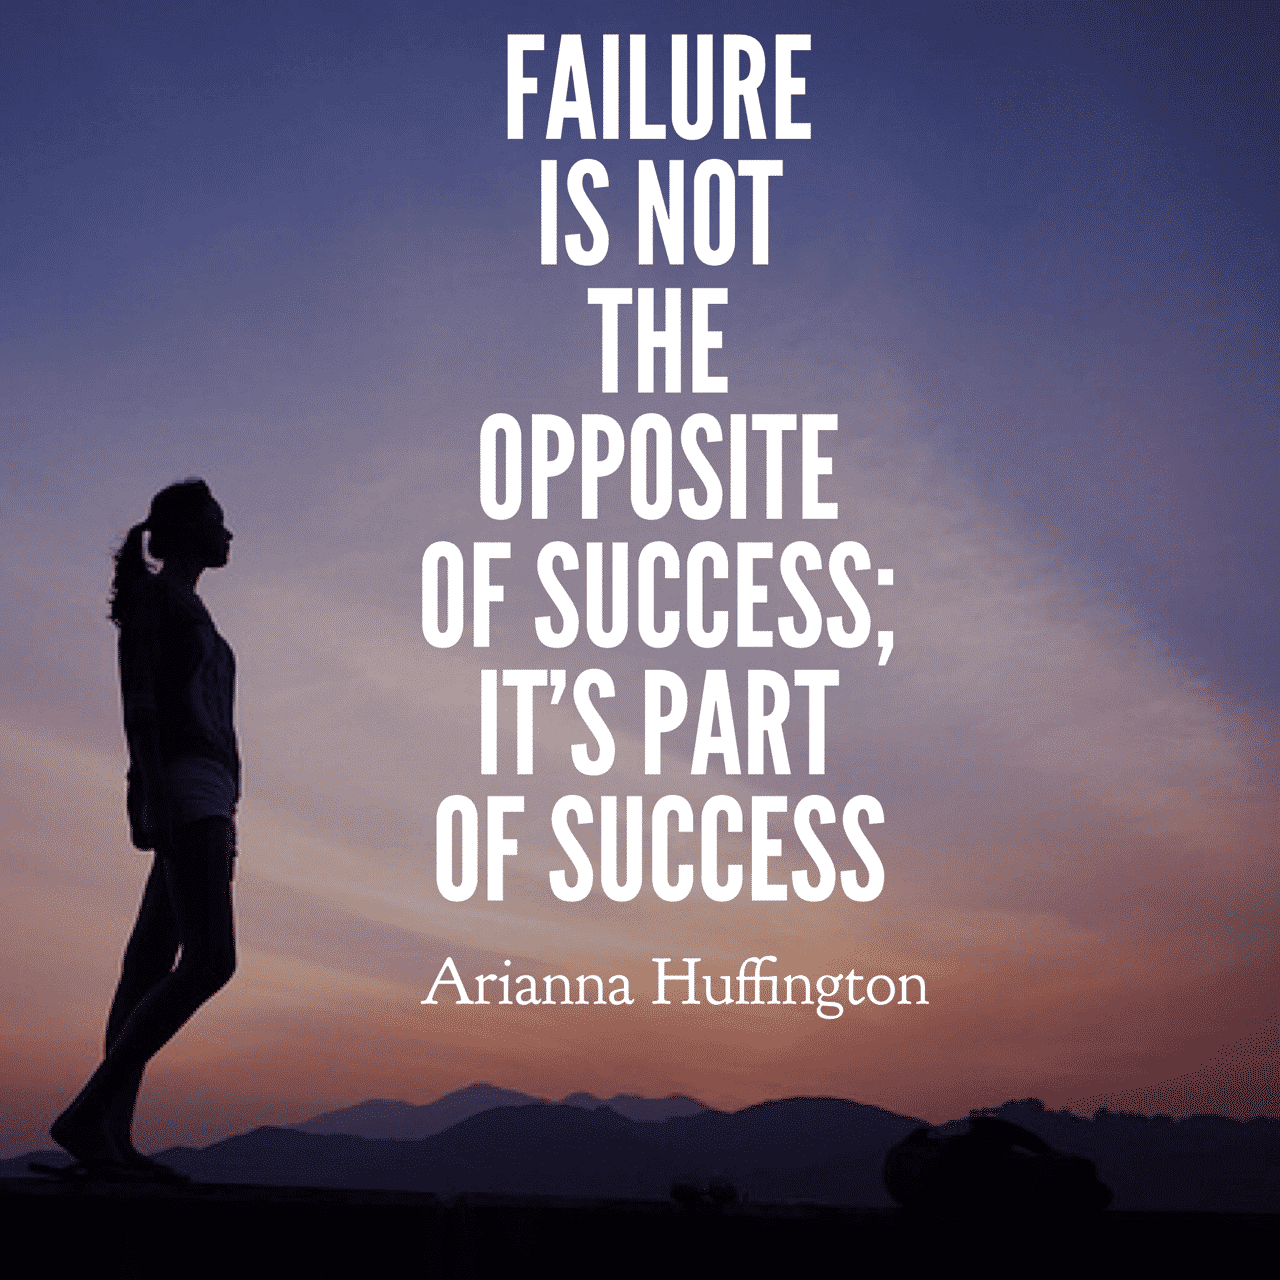 Inspirational Quotes About Failure: 15 Awesome Arianna Huffington Quotes